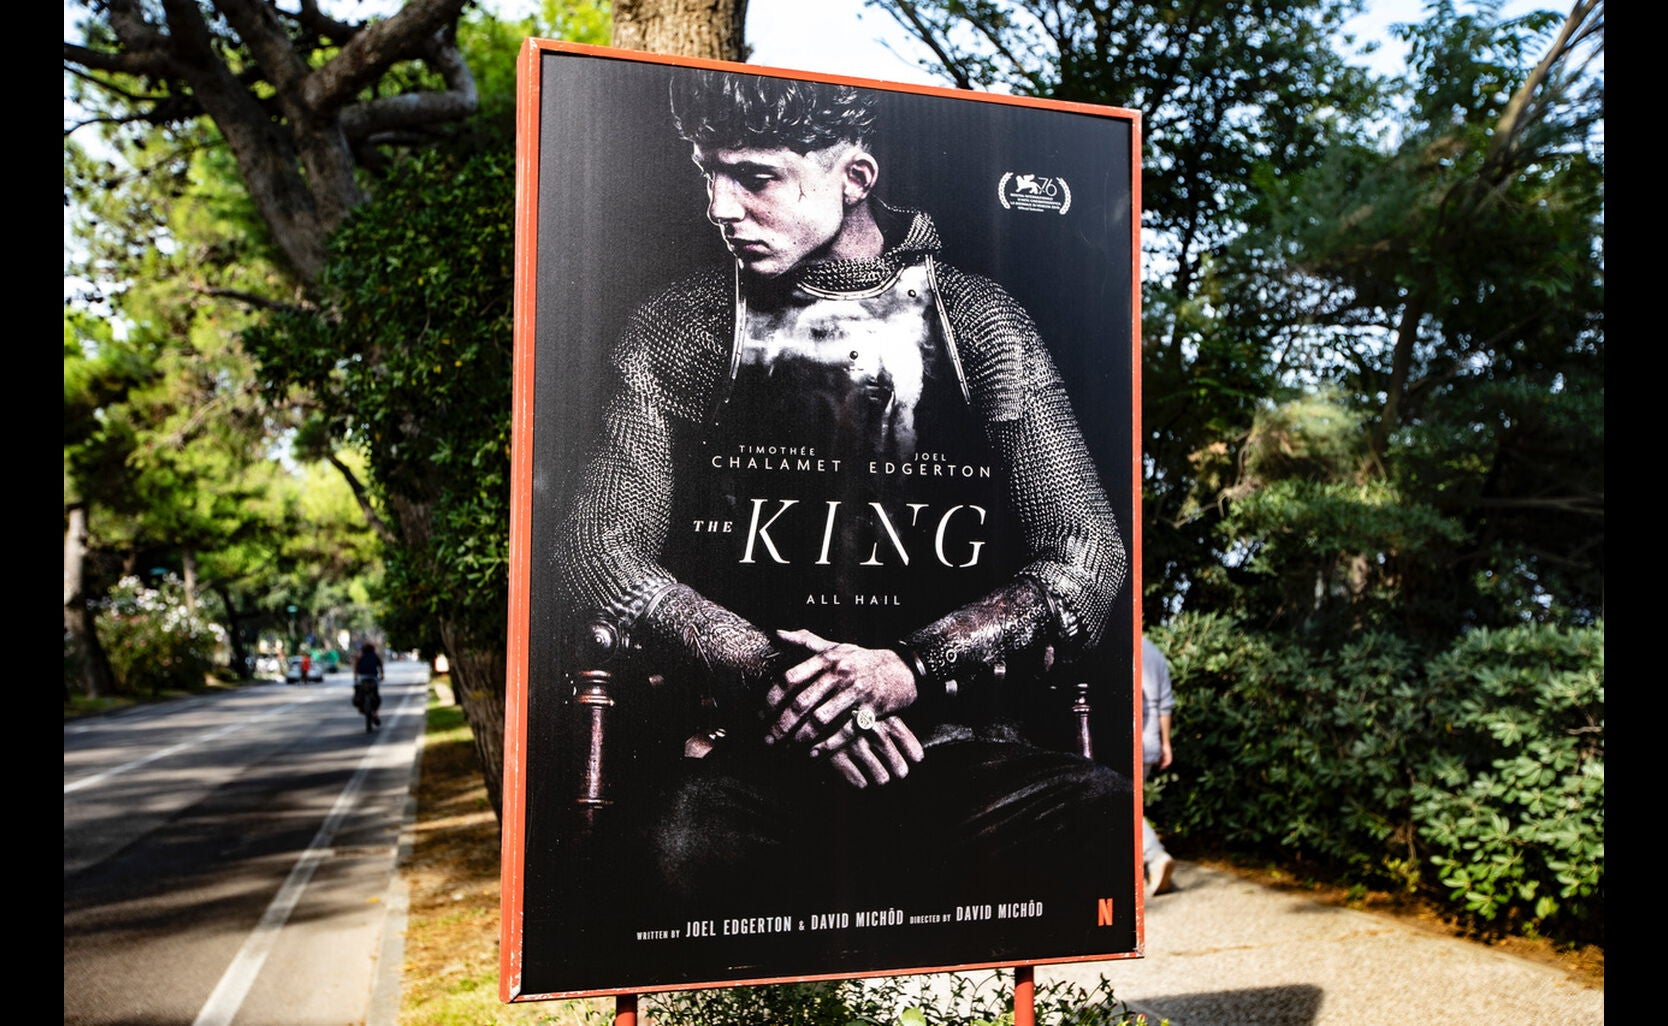 POster for the film The King, 2019